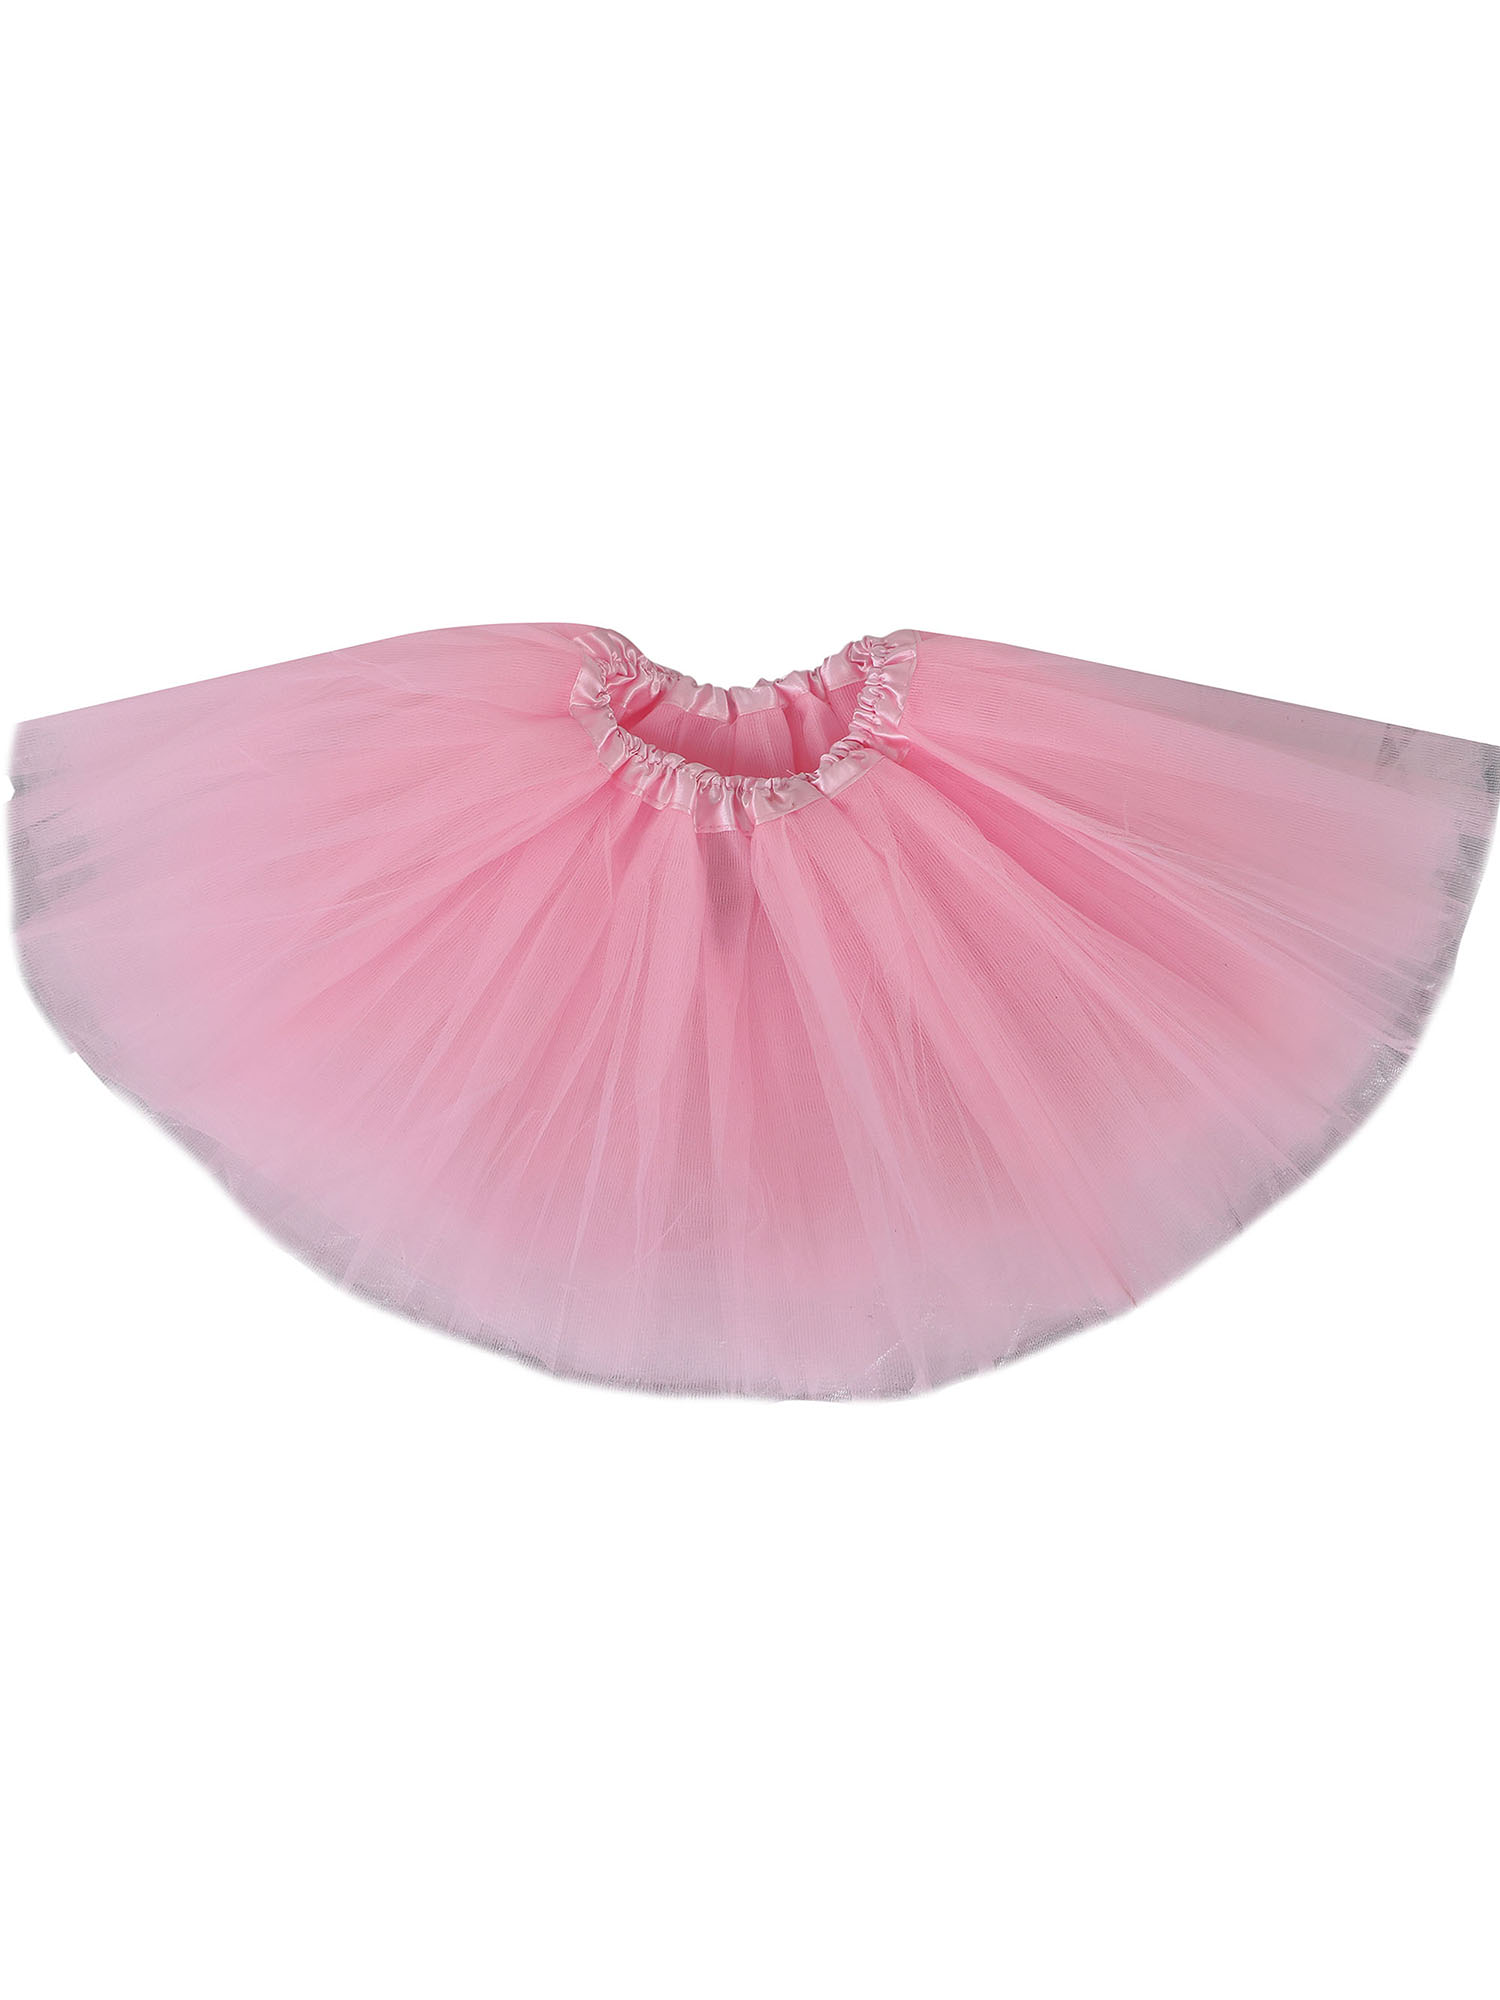 Simplicity Baby Classic Elastic 5 Layer Tulle Tutu Skirt Pettiskirt,Peacock Blue